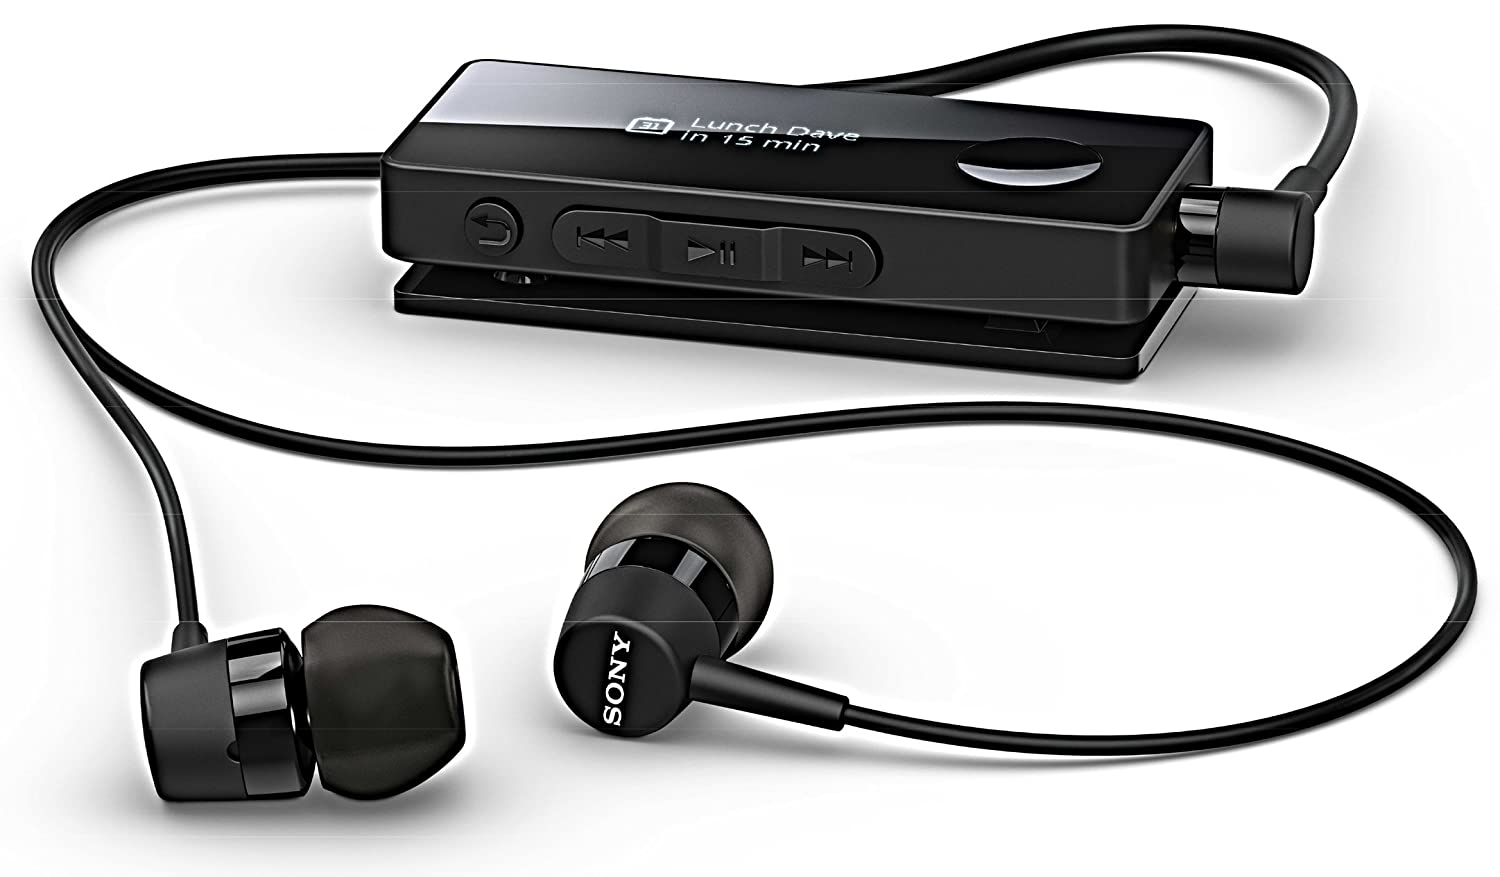 361f93a606c Sony SBH50 Stereo Bluetooth Wireless Headset with NFC: Amazon.co.uk:  Electronics